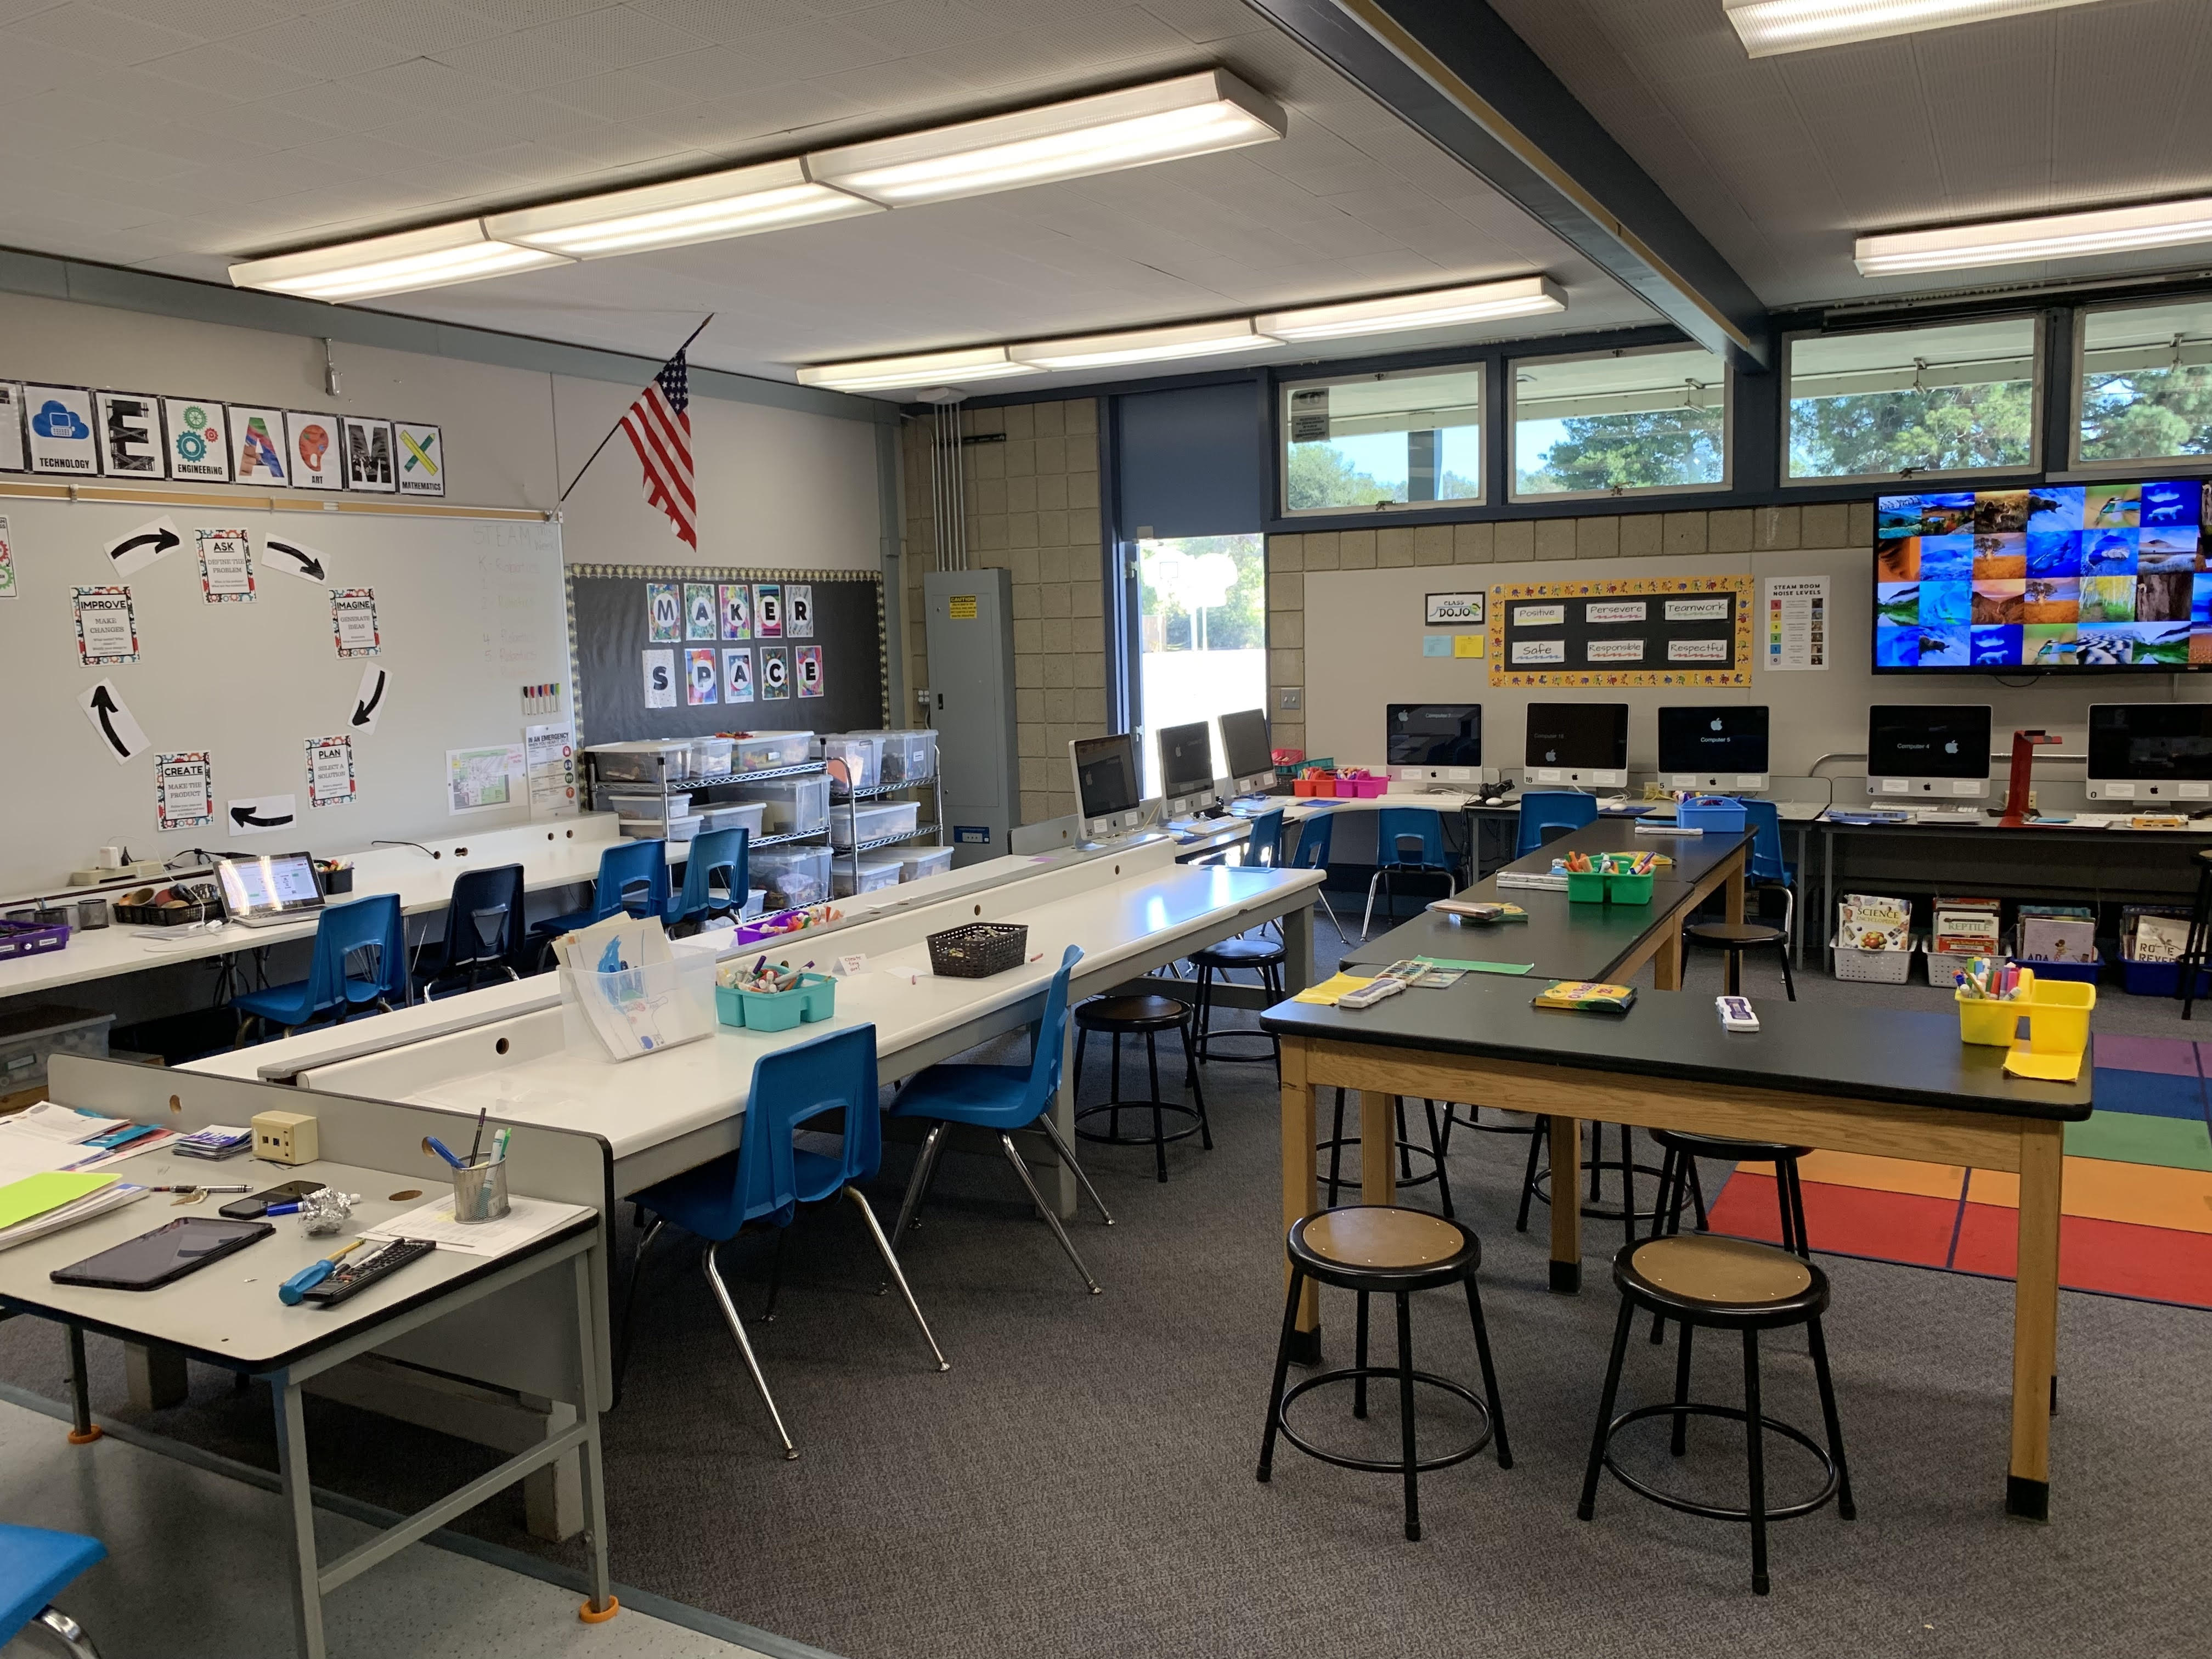 Teachers at El Camino School made do with an antiquated computer center ill-suited for creative collaboration among students.